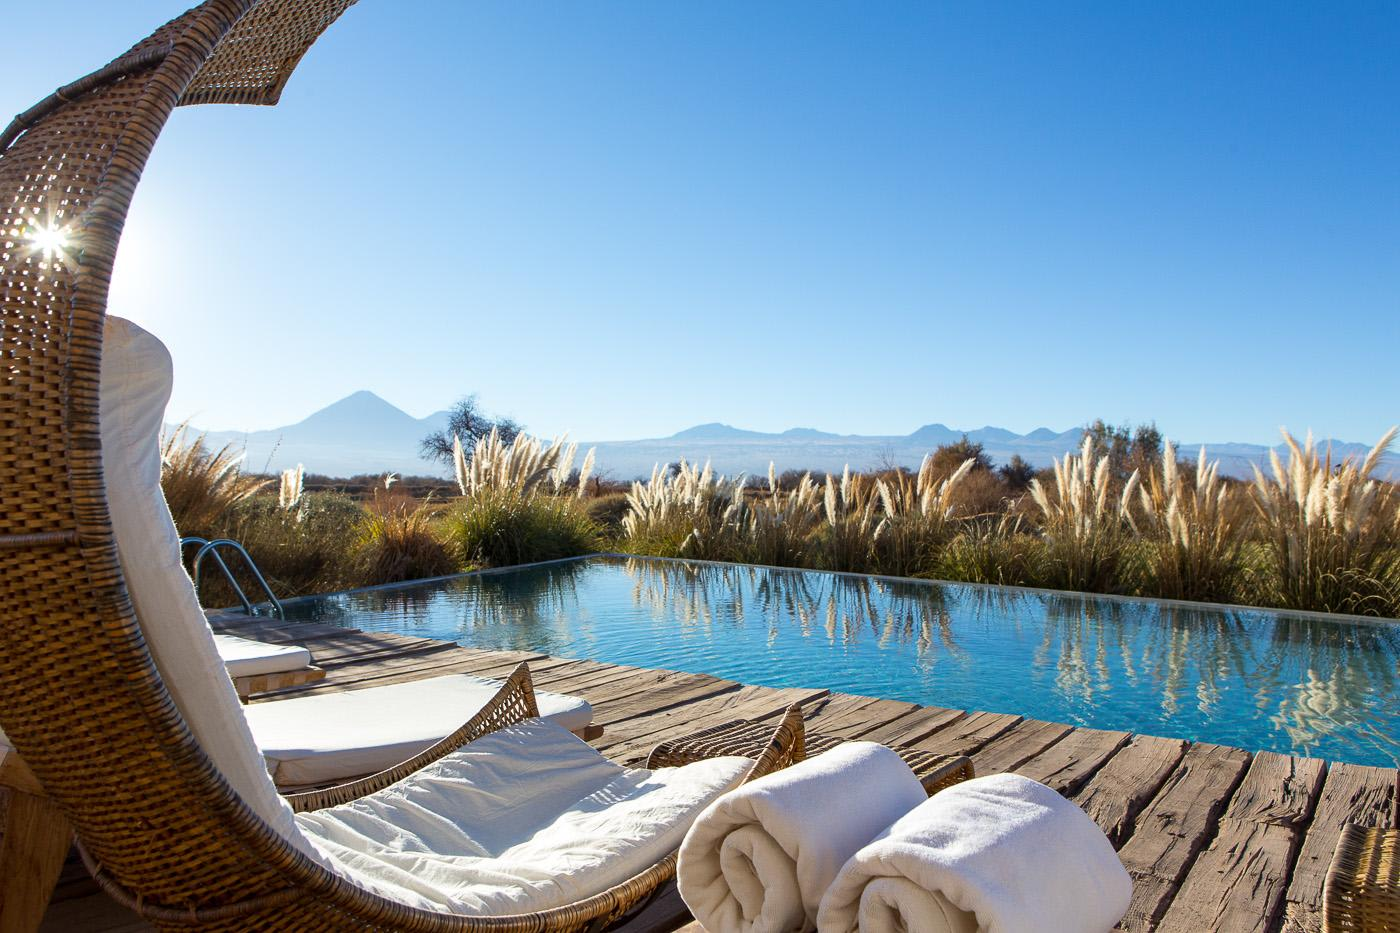 Tierra Atacama's 6-Day All Inclusive Program Day Five - Relaxing at the Lodge.